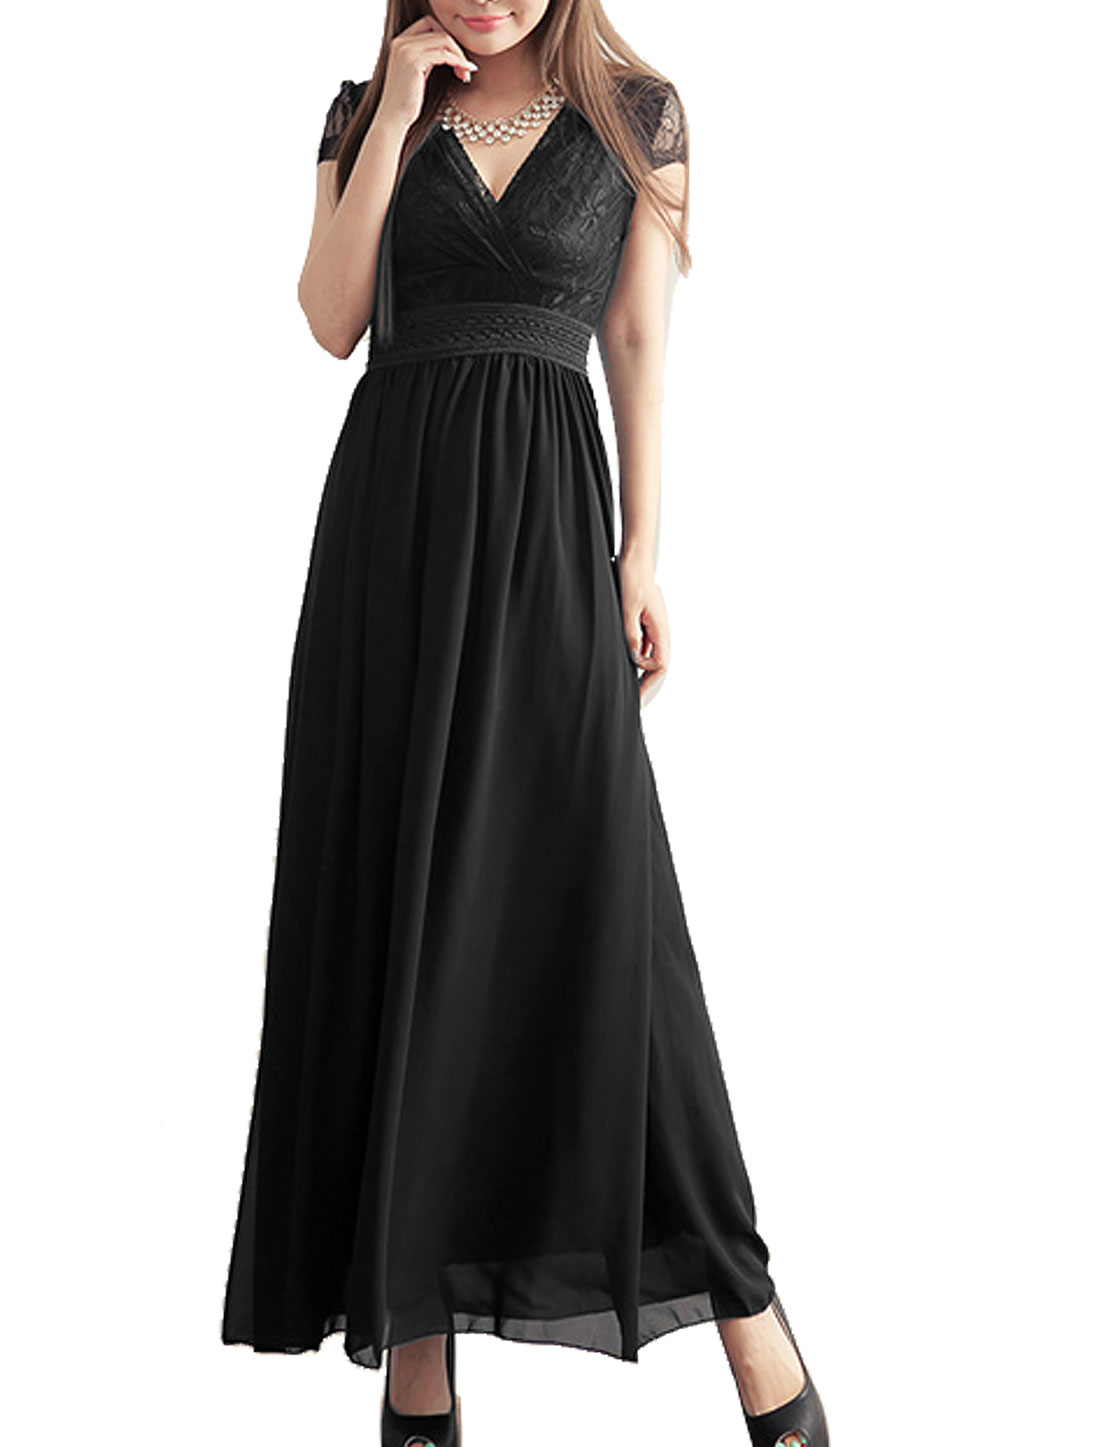 Deep V Neck Cap Sleeve Inner Lining Full Length Dress Black XS for Women